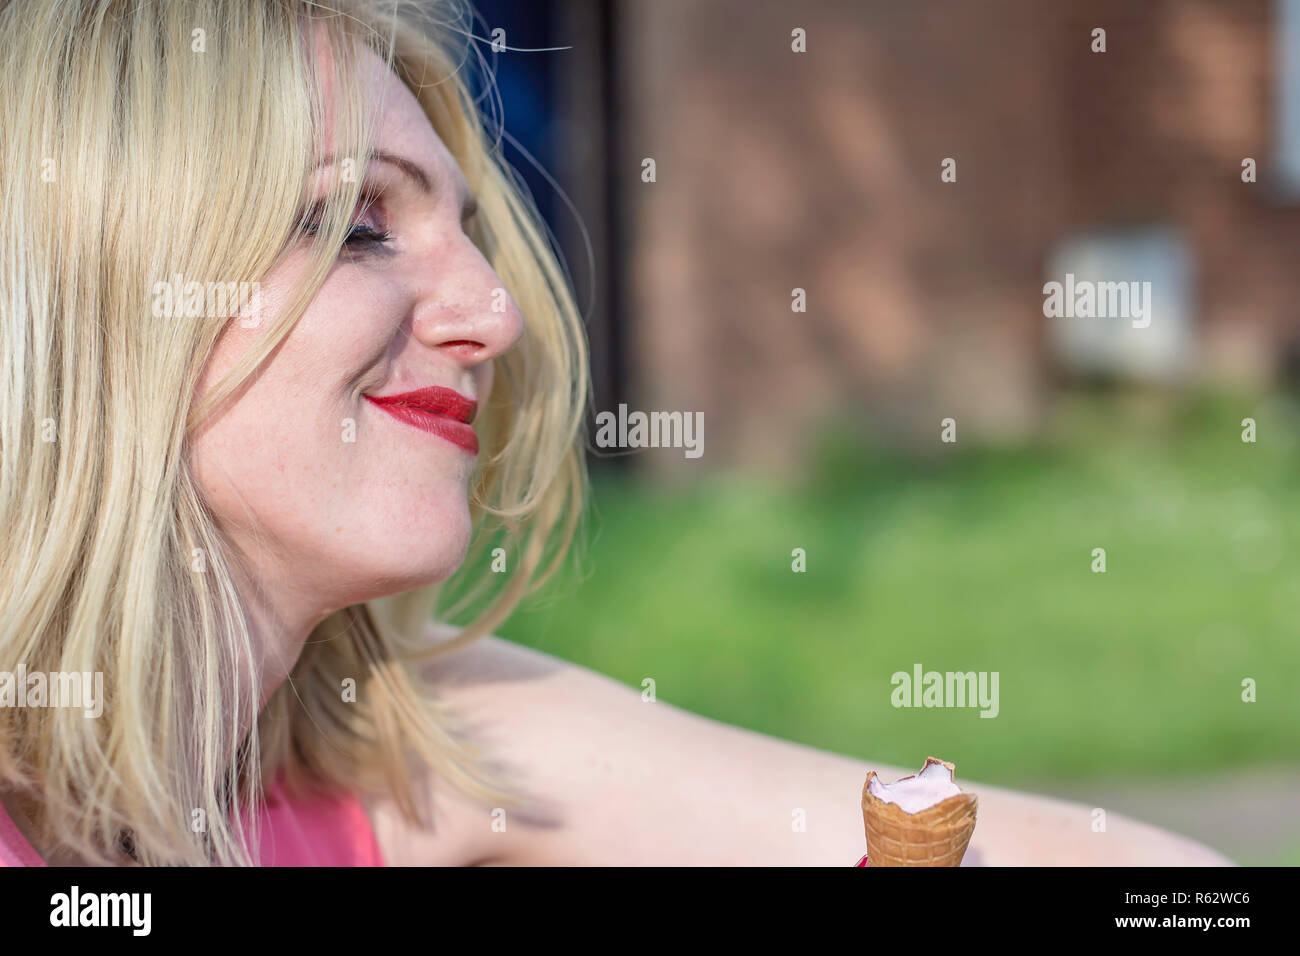 Young woman eating an Ice cream on warm summer day.Portrait of happy person on british council estate.Natural woman concept.Space for copy. - Stock Image